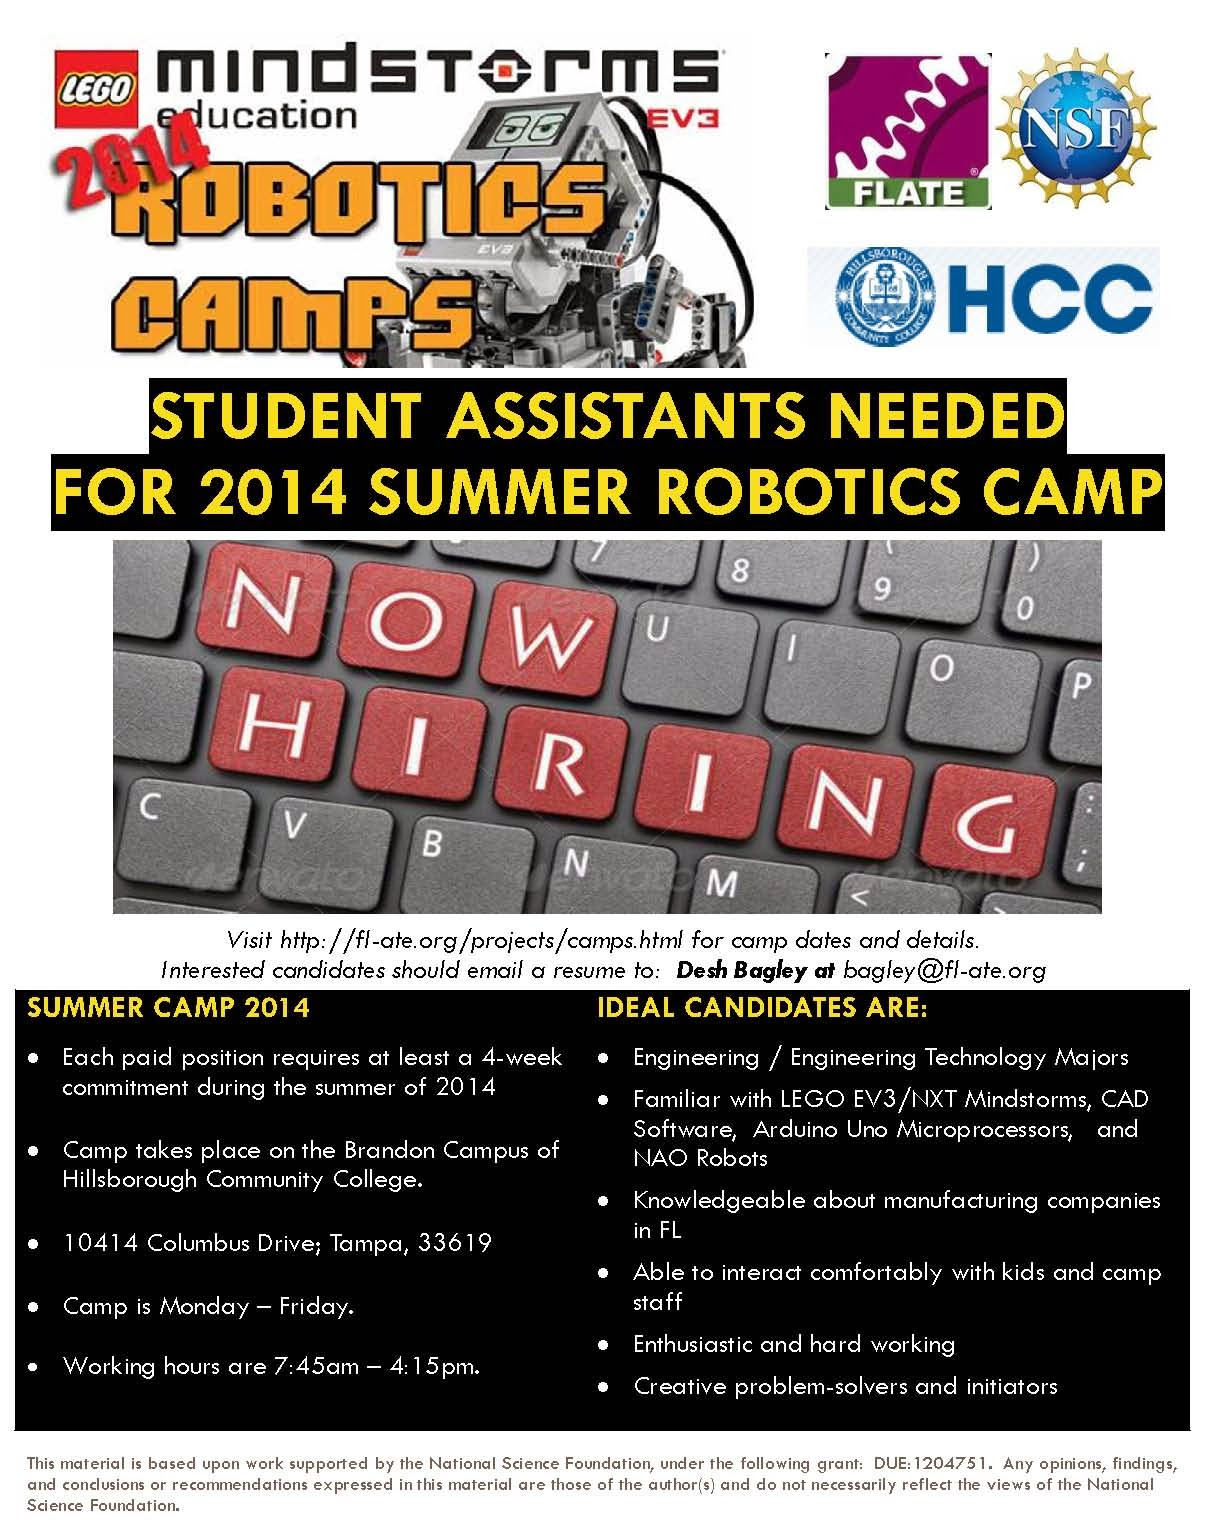 Student Assistants Needed for Robotics Camps